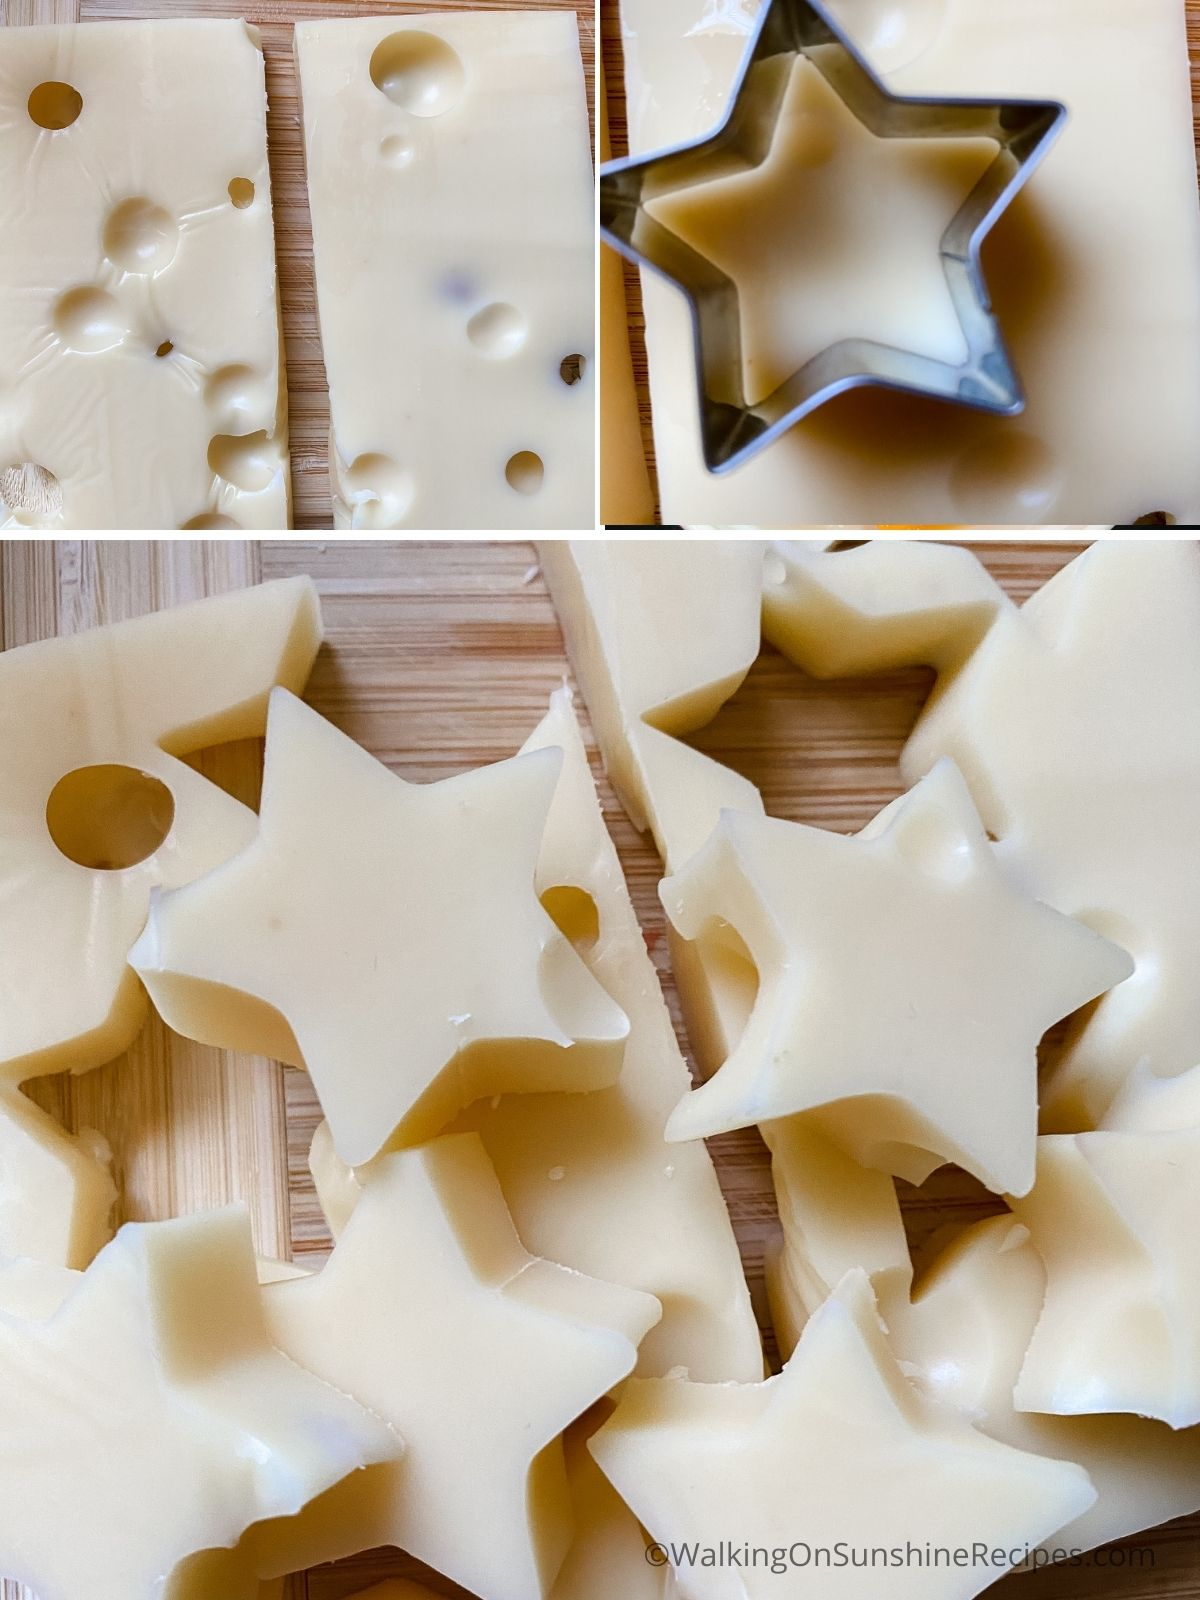 Cut star shapes in Swiss cheese.